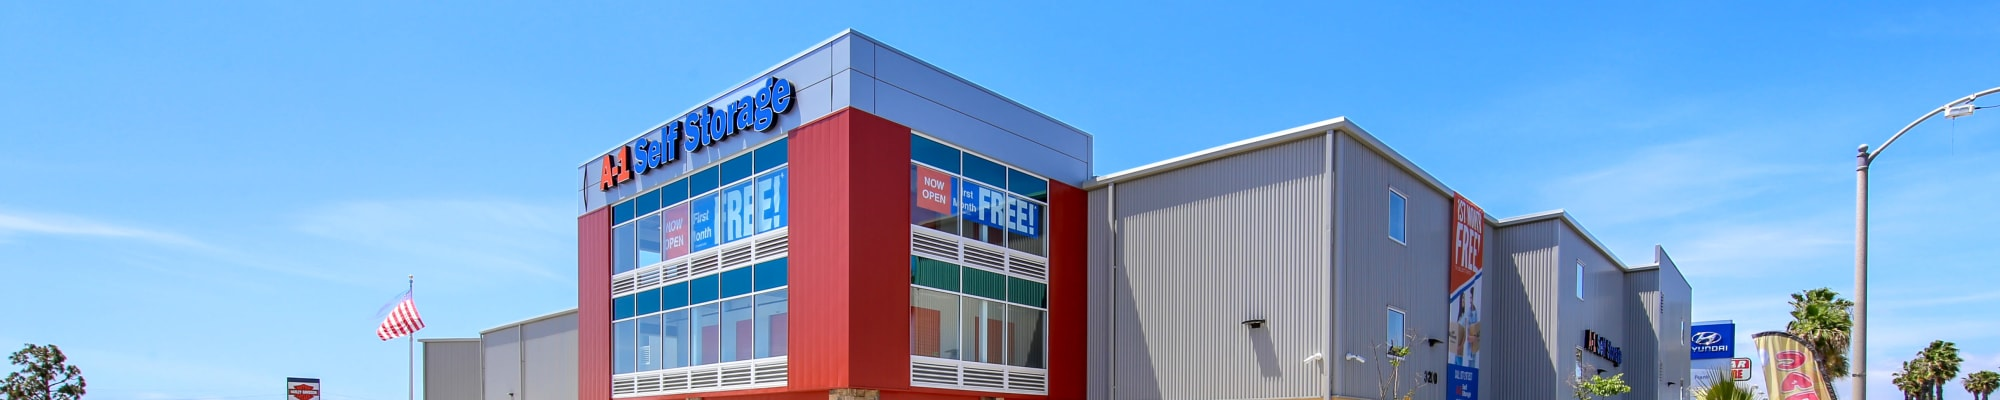 Read the latest entries in the A-1 Self Storage blog